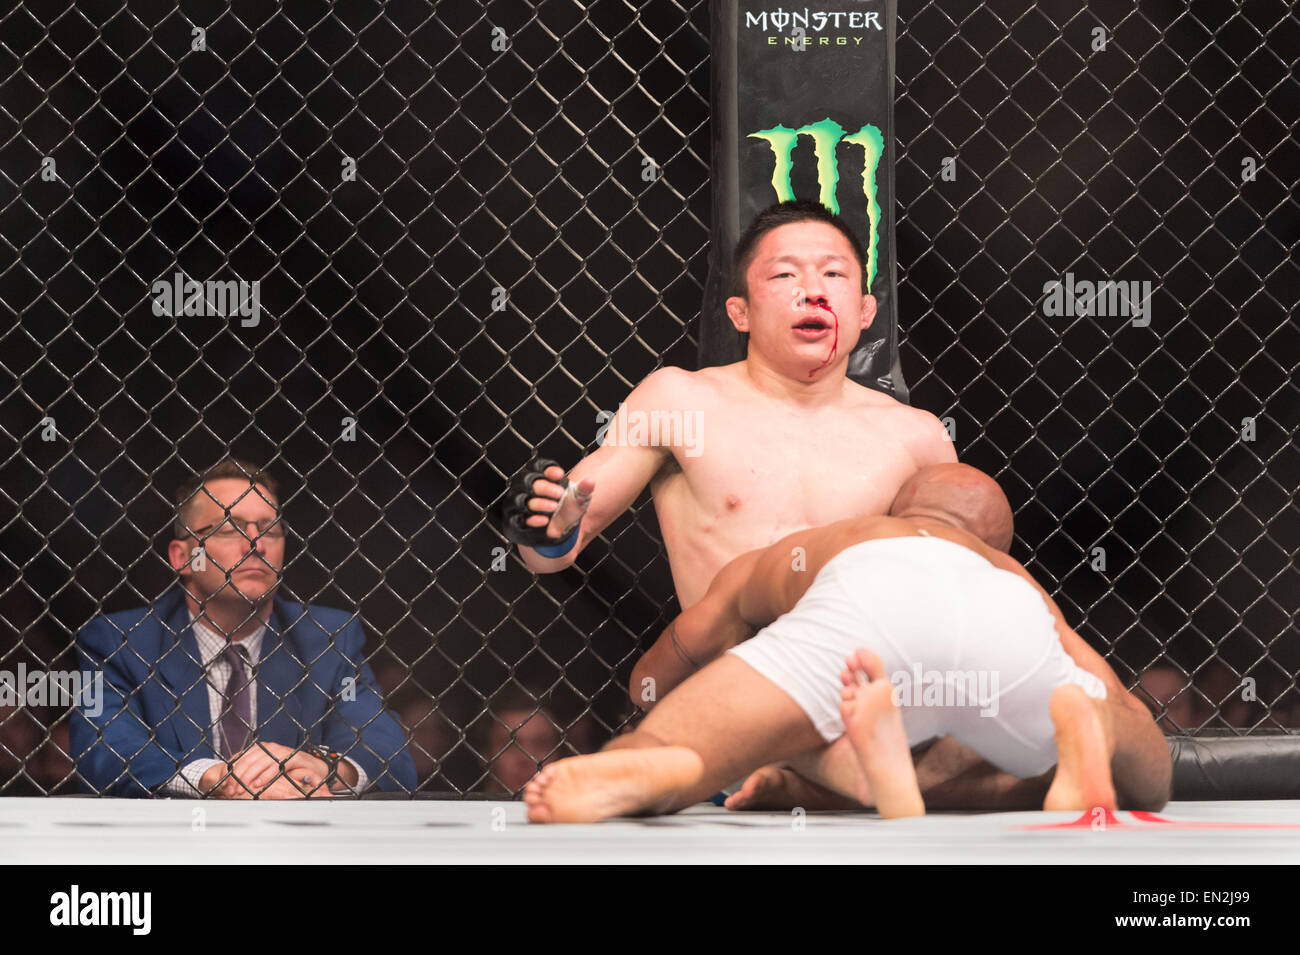 Montreal, Quebec, Canada. 25th Apr, 2015. DEMETRIOUS ''Mighty Mouse'' JOHNSON dominates KYOJI HORIGUCHI - Stock Image